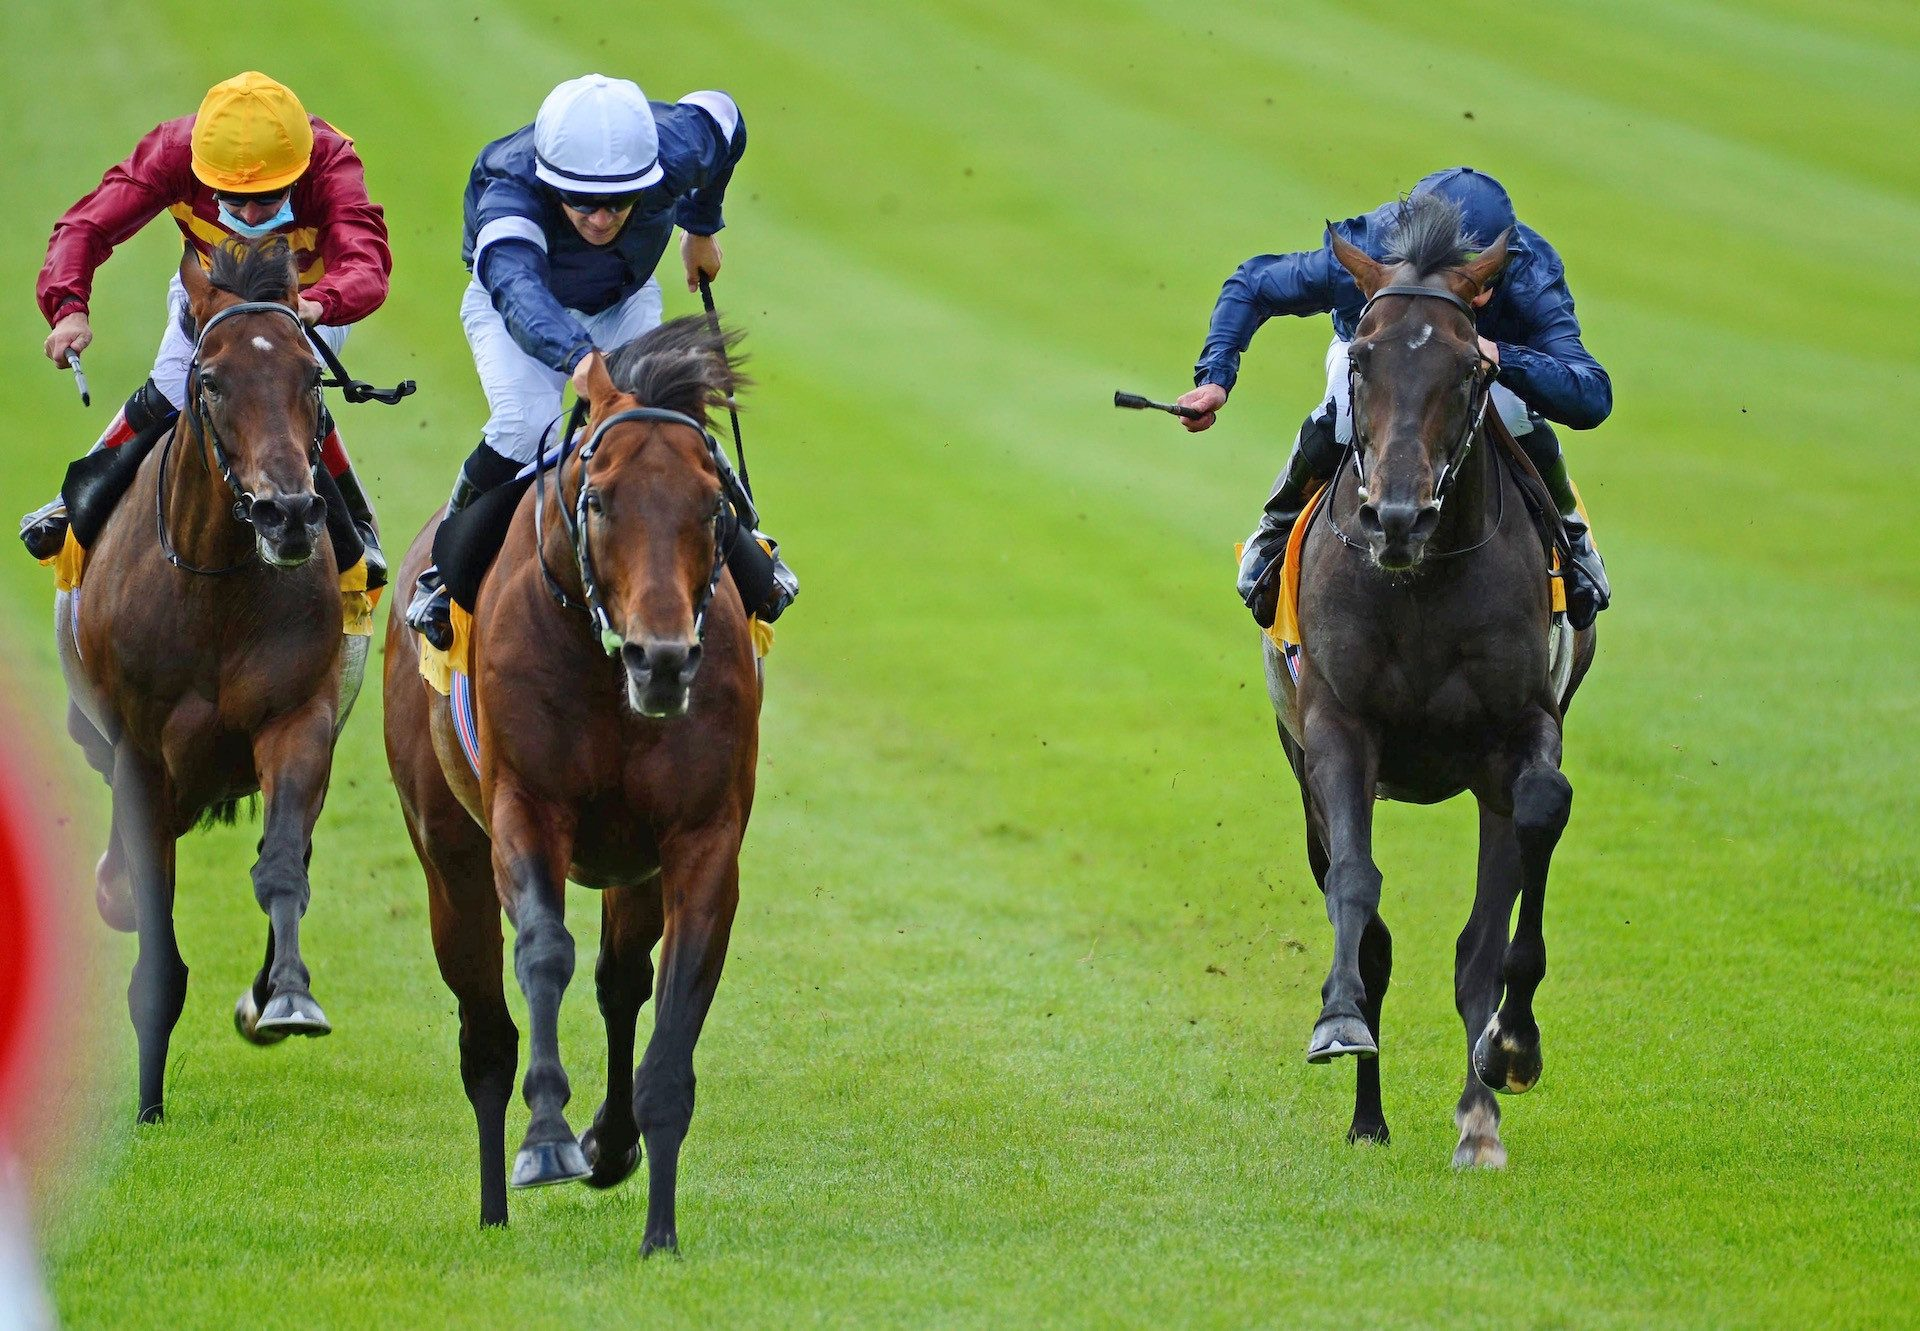 Buckhurst (Australia) Wins The Gr.3 Alleged Stakes at the Curragh